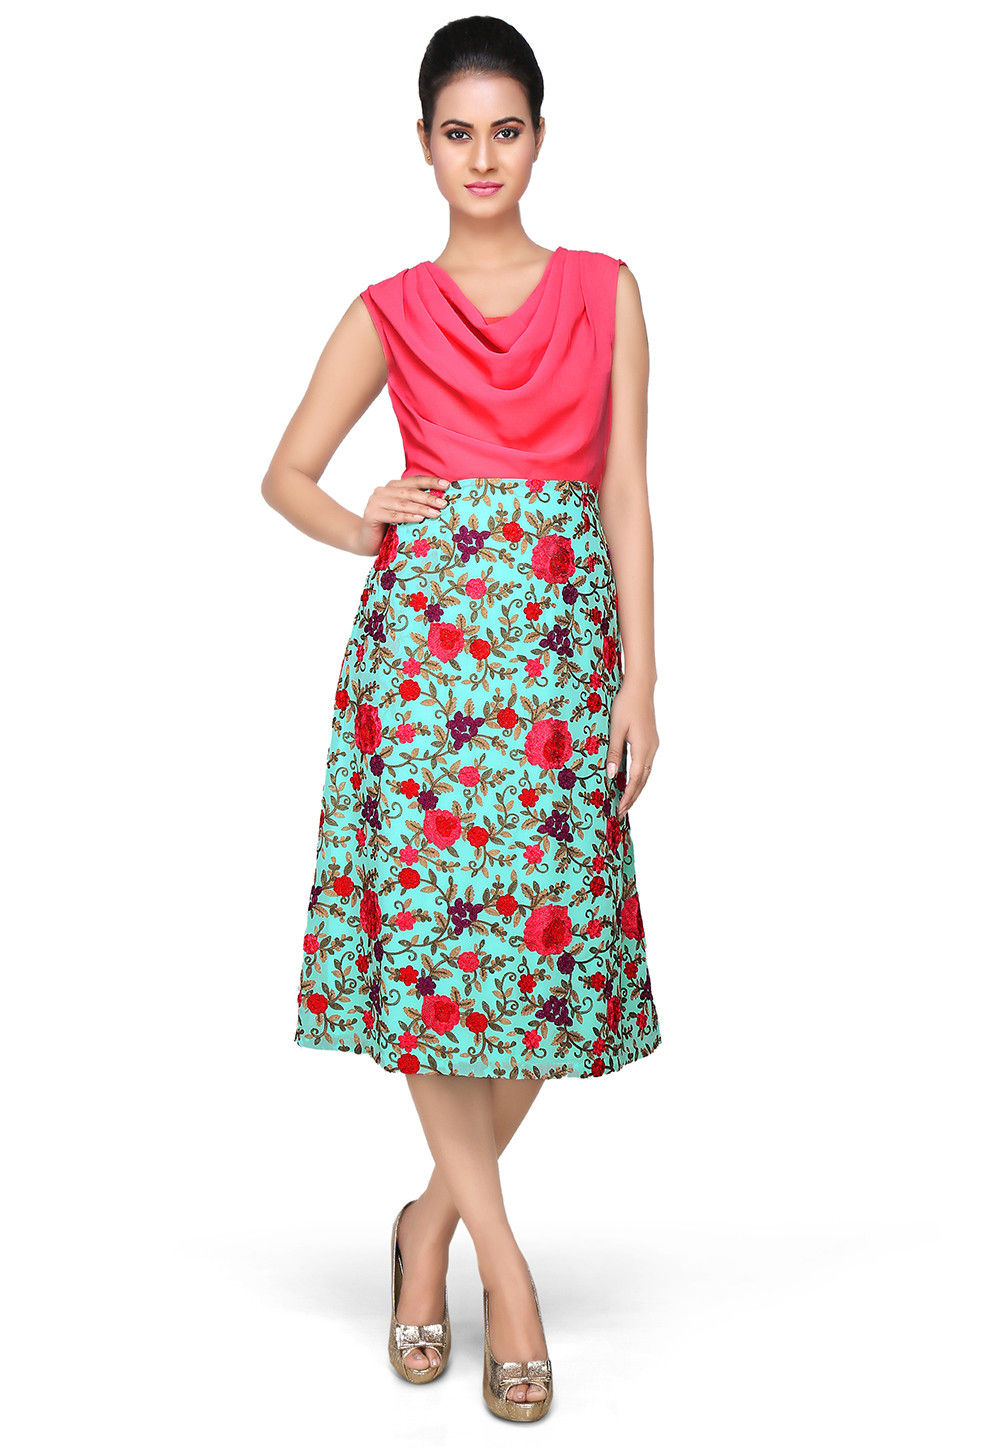 Embroidered Georgette Dress In Pink and Turquoise